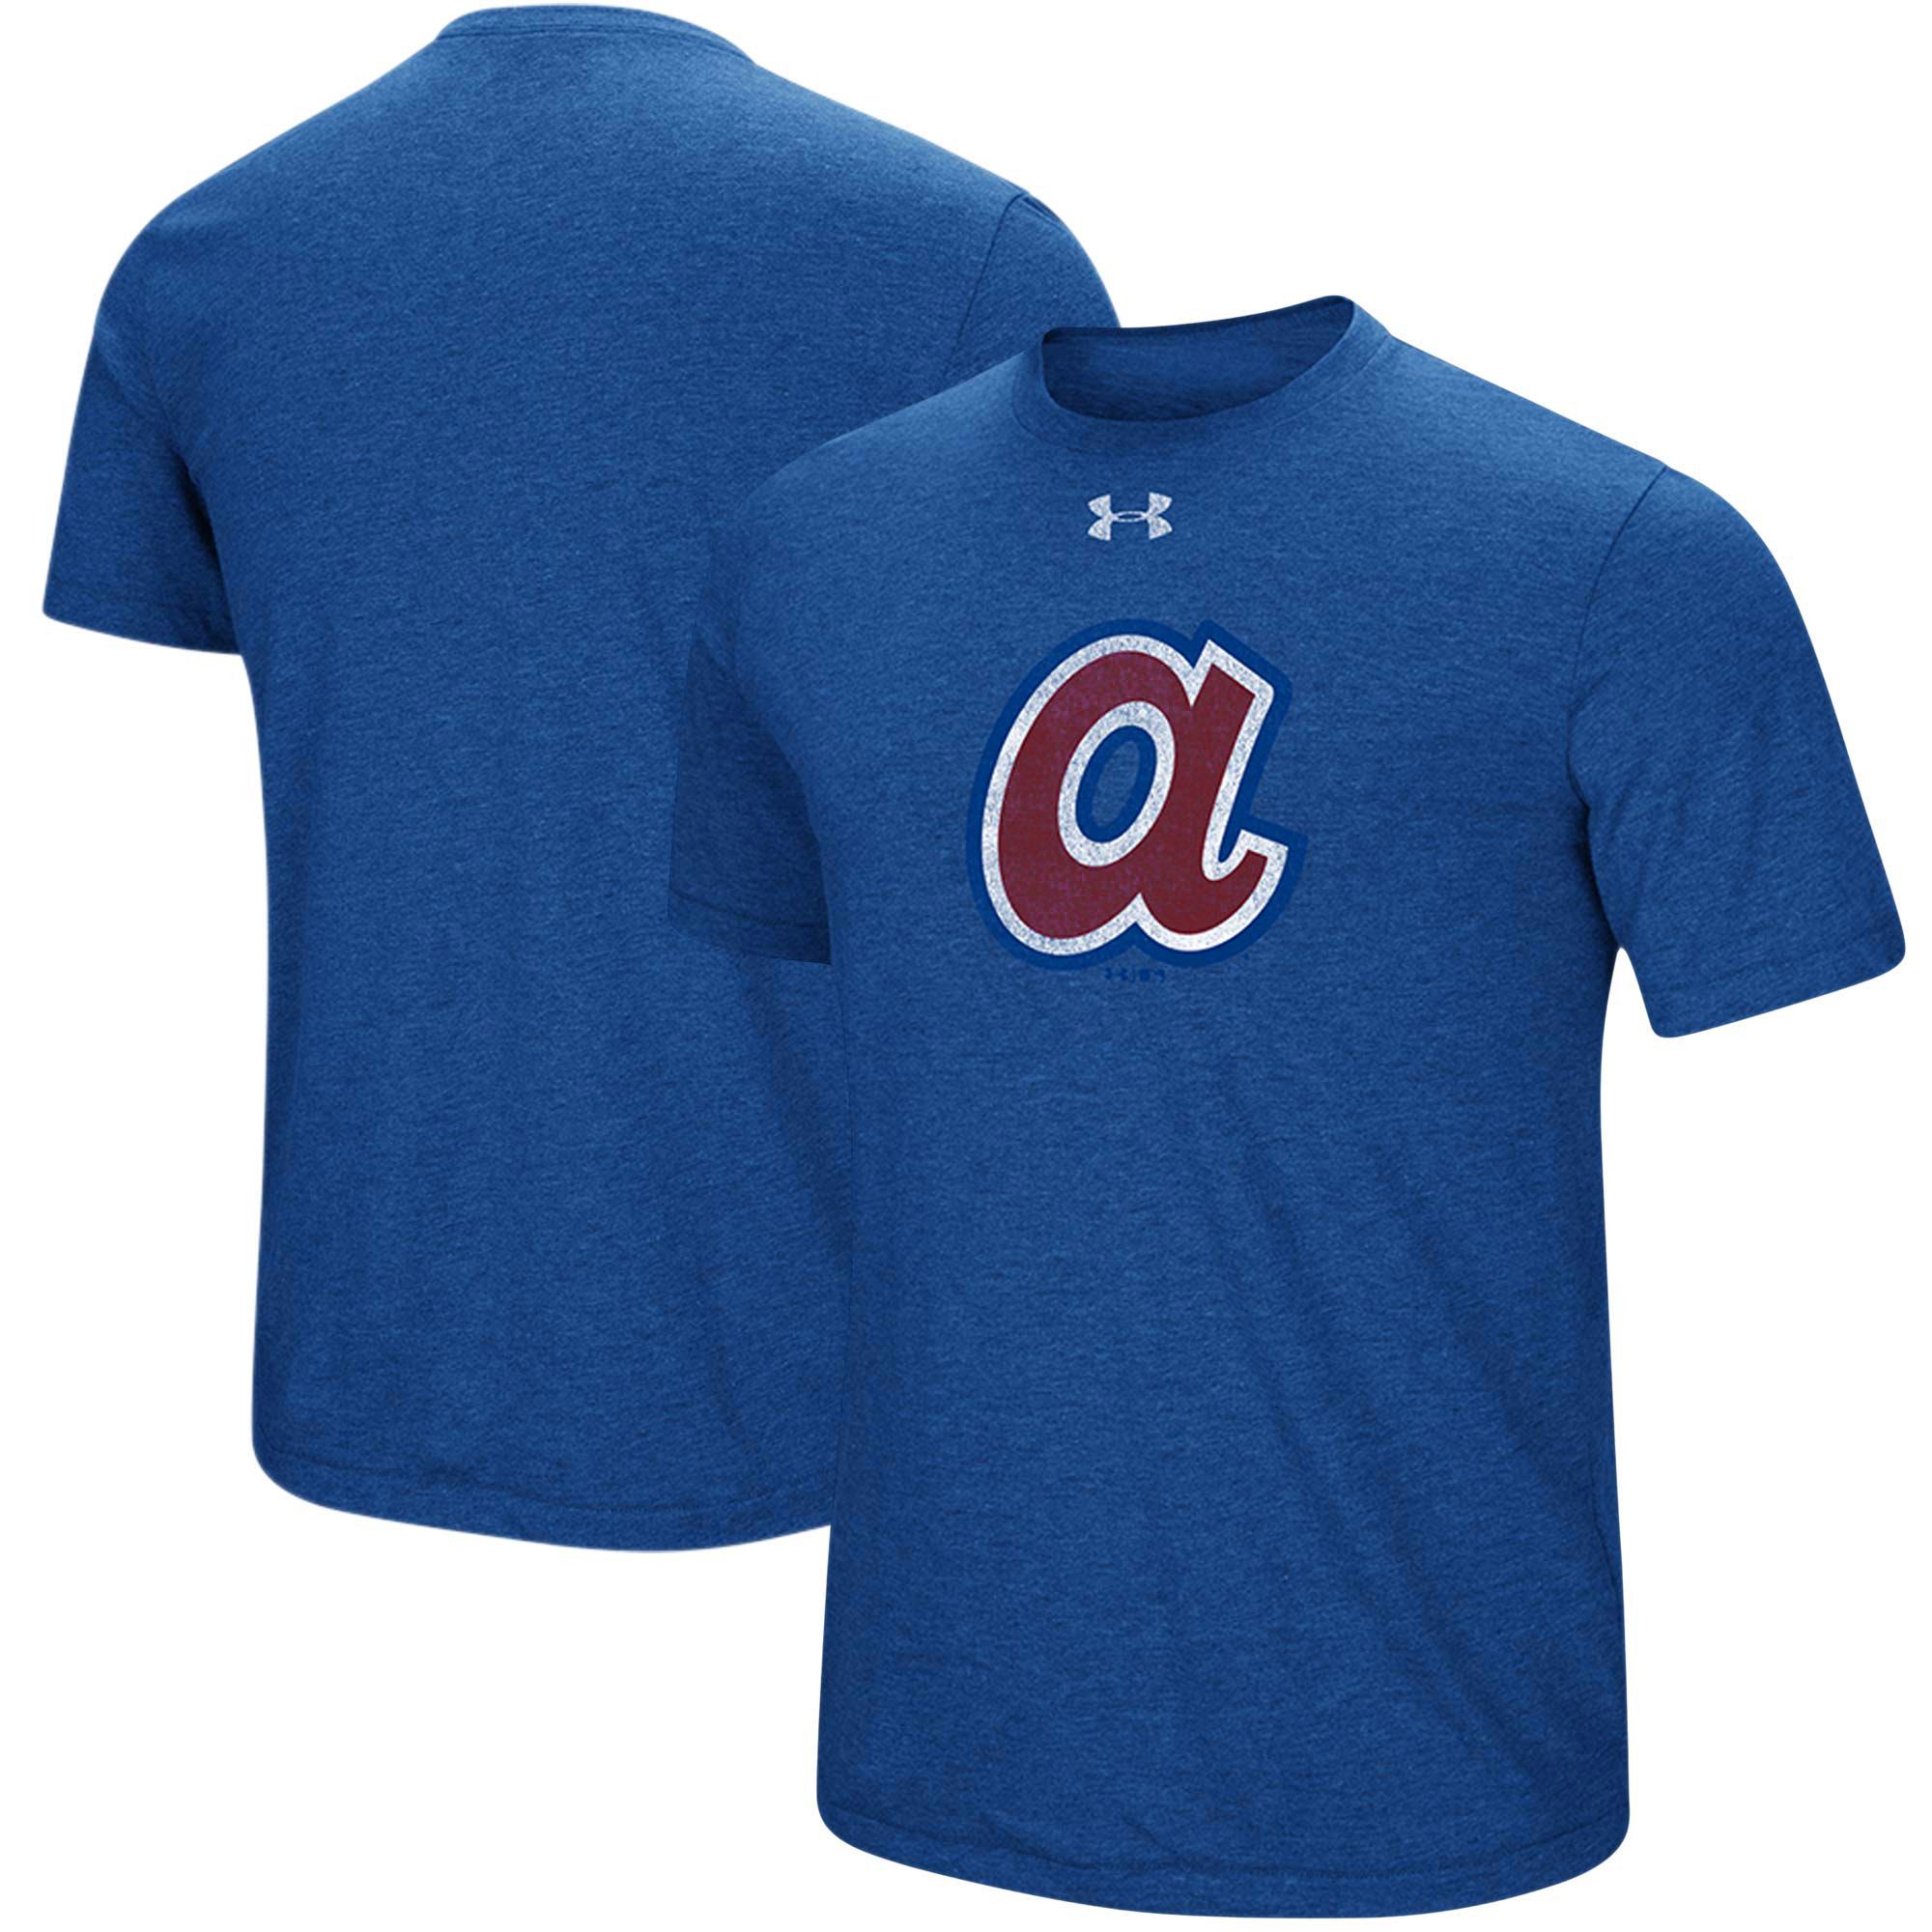 Atlanta Braves Under Armour Cooperstown Collection Mark Performance Tri-Blend T-Shirt - Heathered Royal